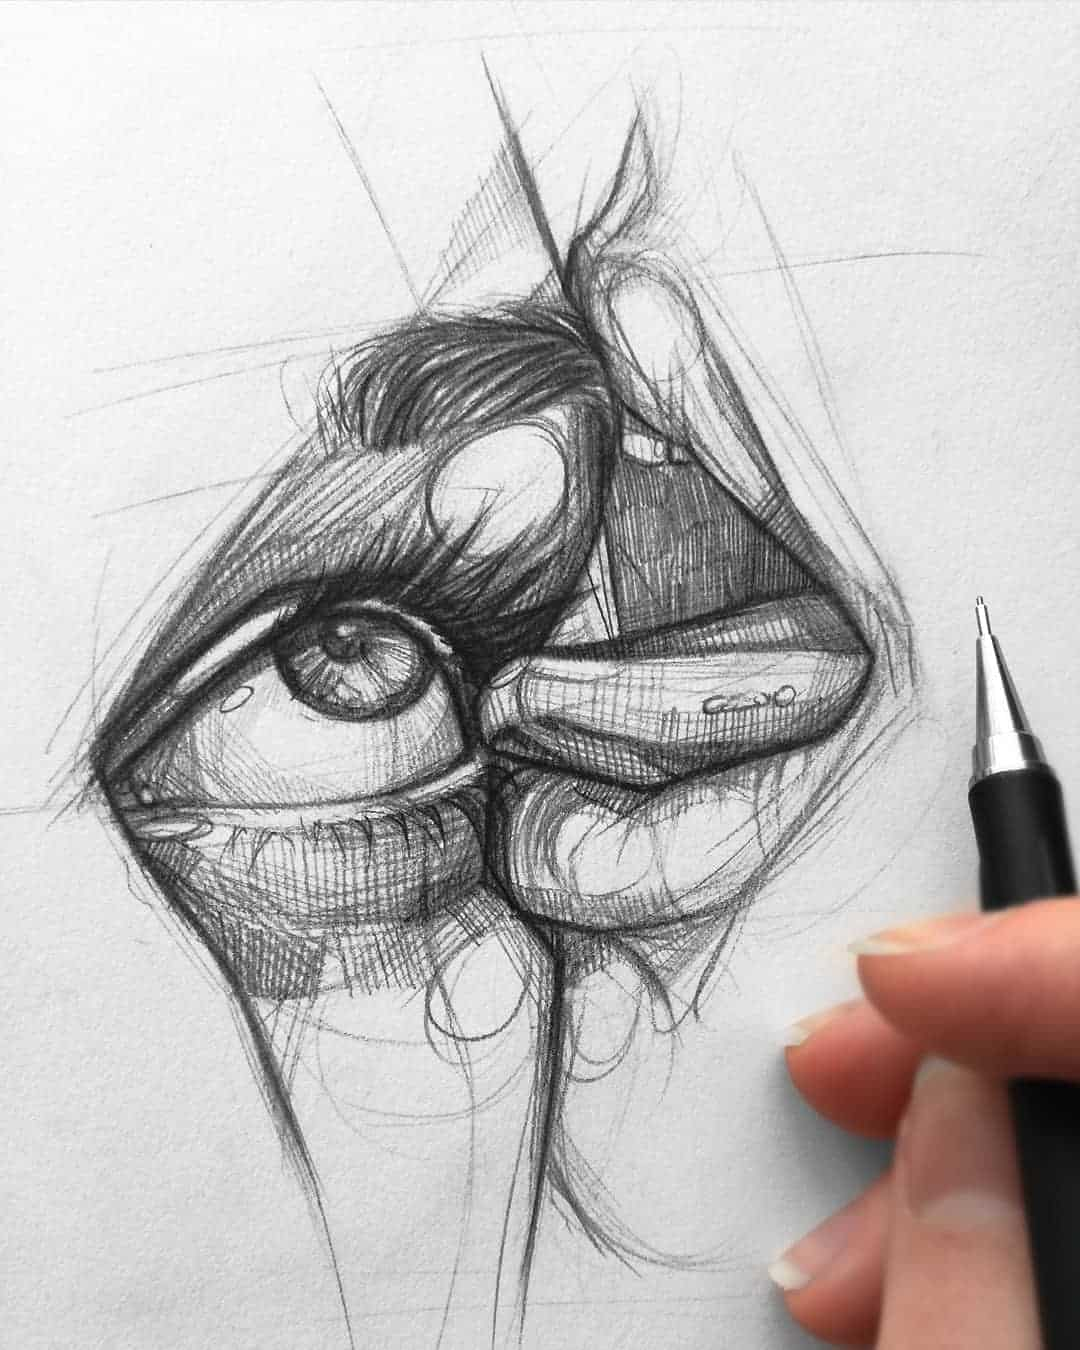 Pencil sketch artist Ani Cinski